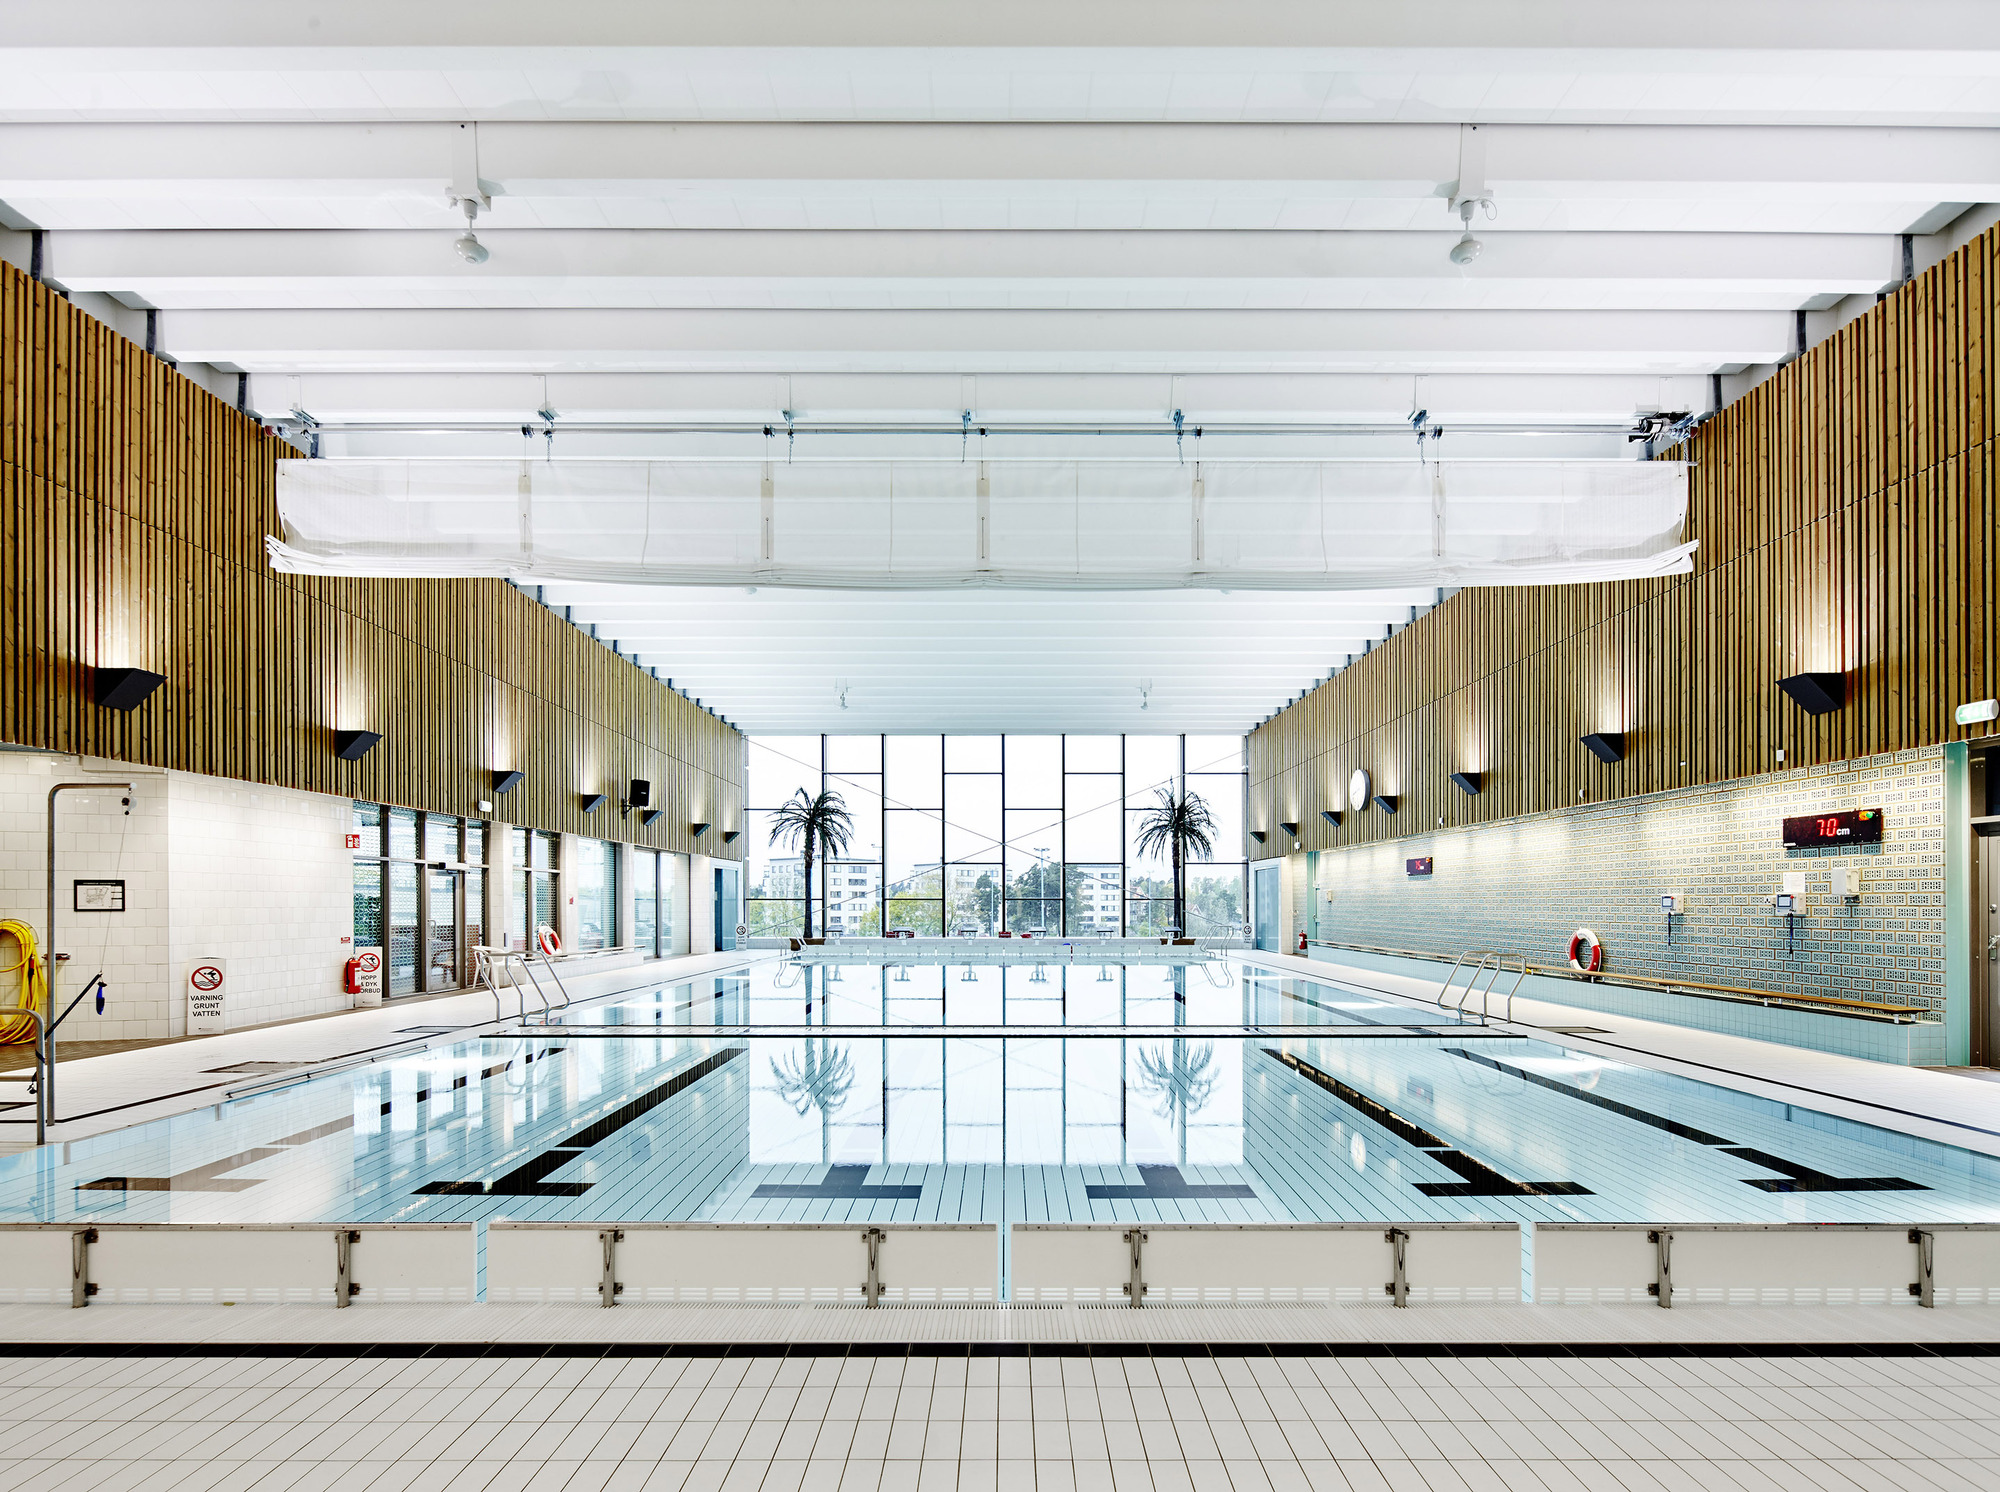 Indoor Swimming Pool for Sundbyberg / Urban Design | ArchDaily